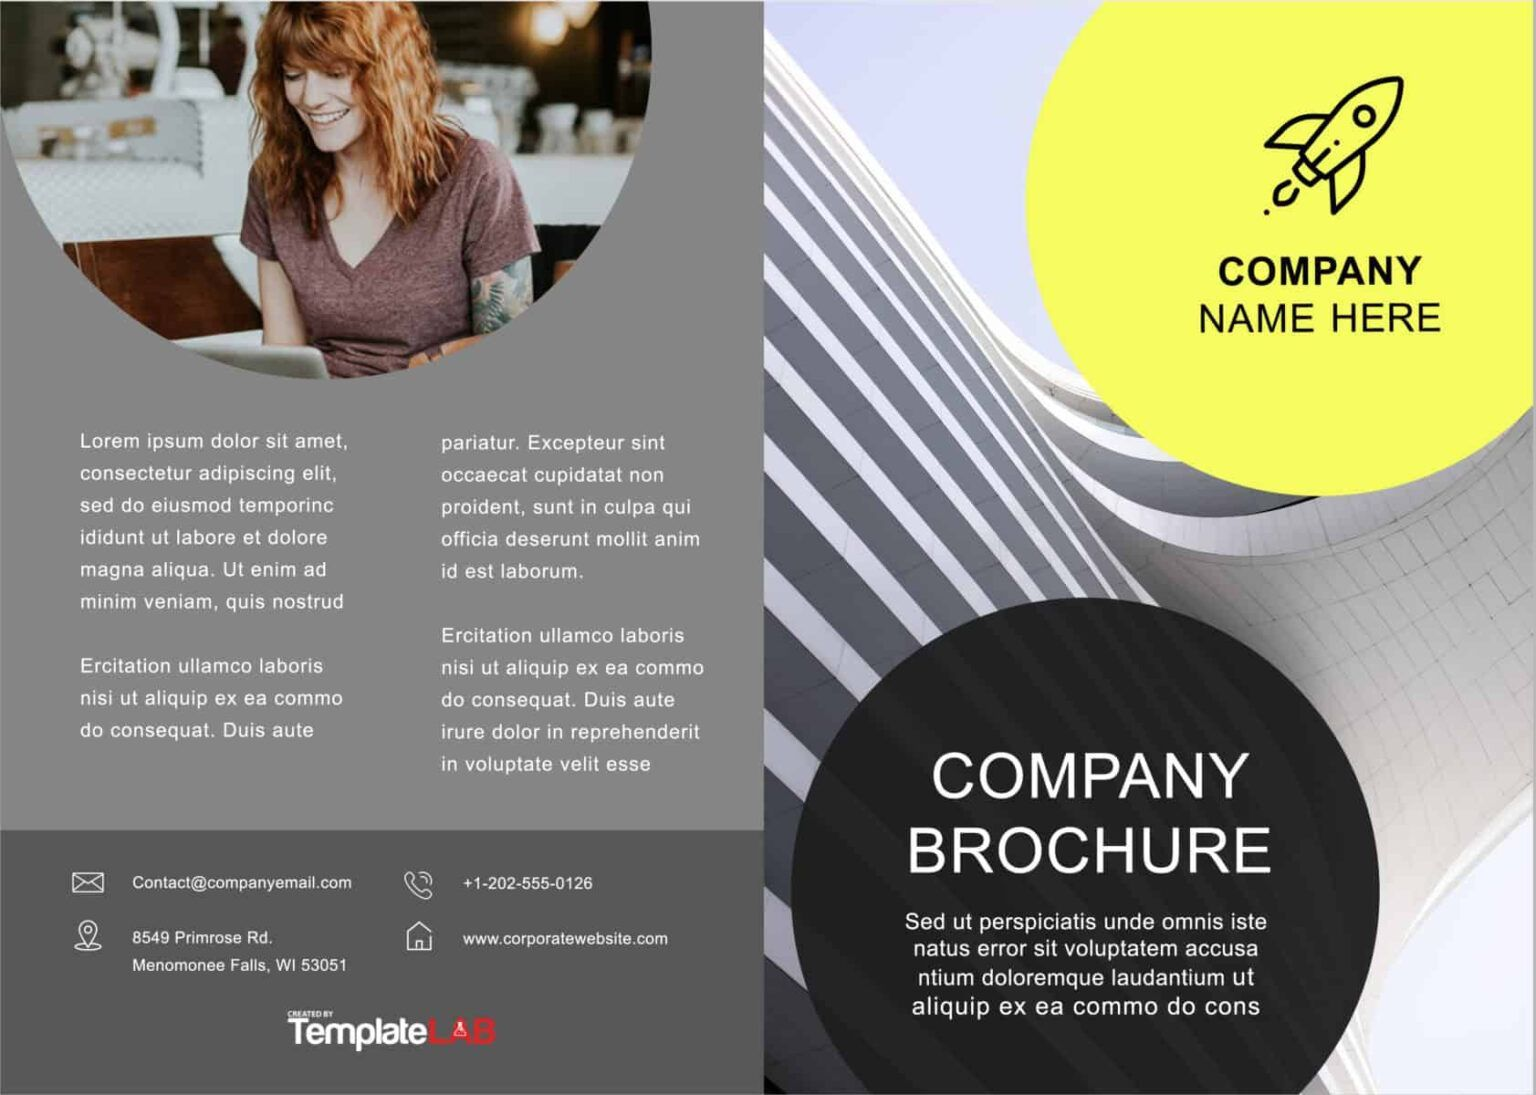 002 Outstanding Brochure Template For Word 2010 High Def  Download Microsoft Free Blank Tri FoldFull